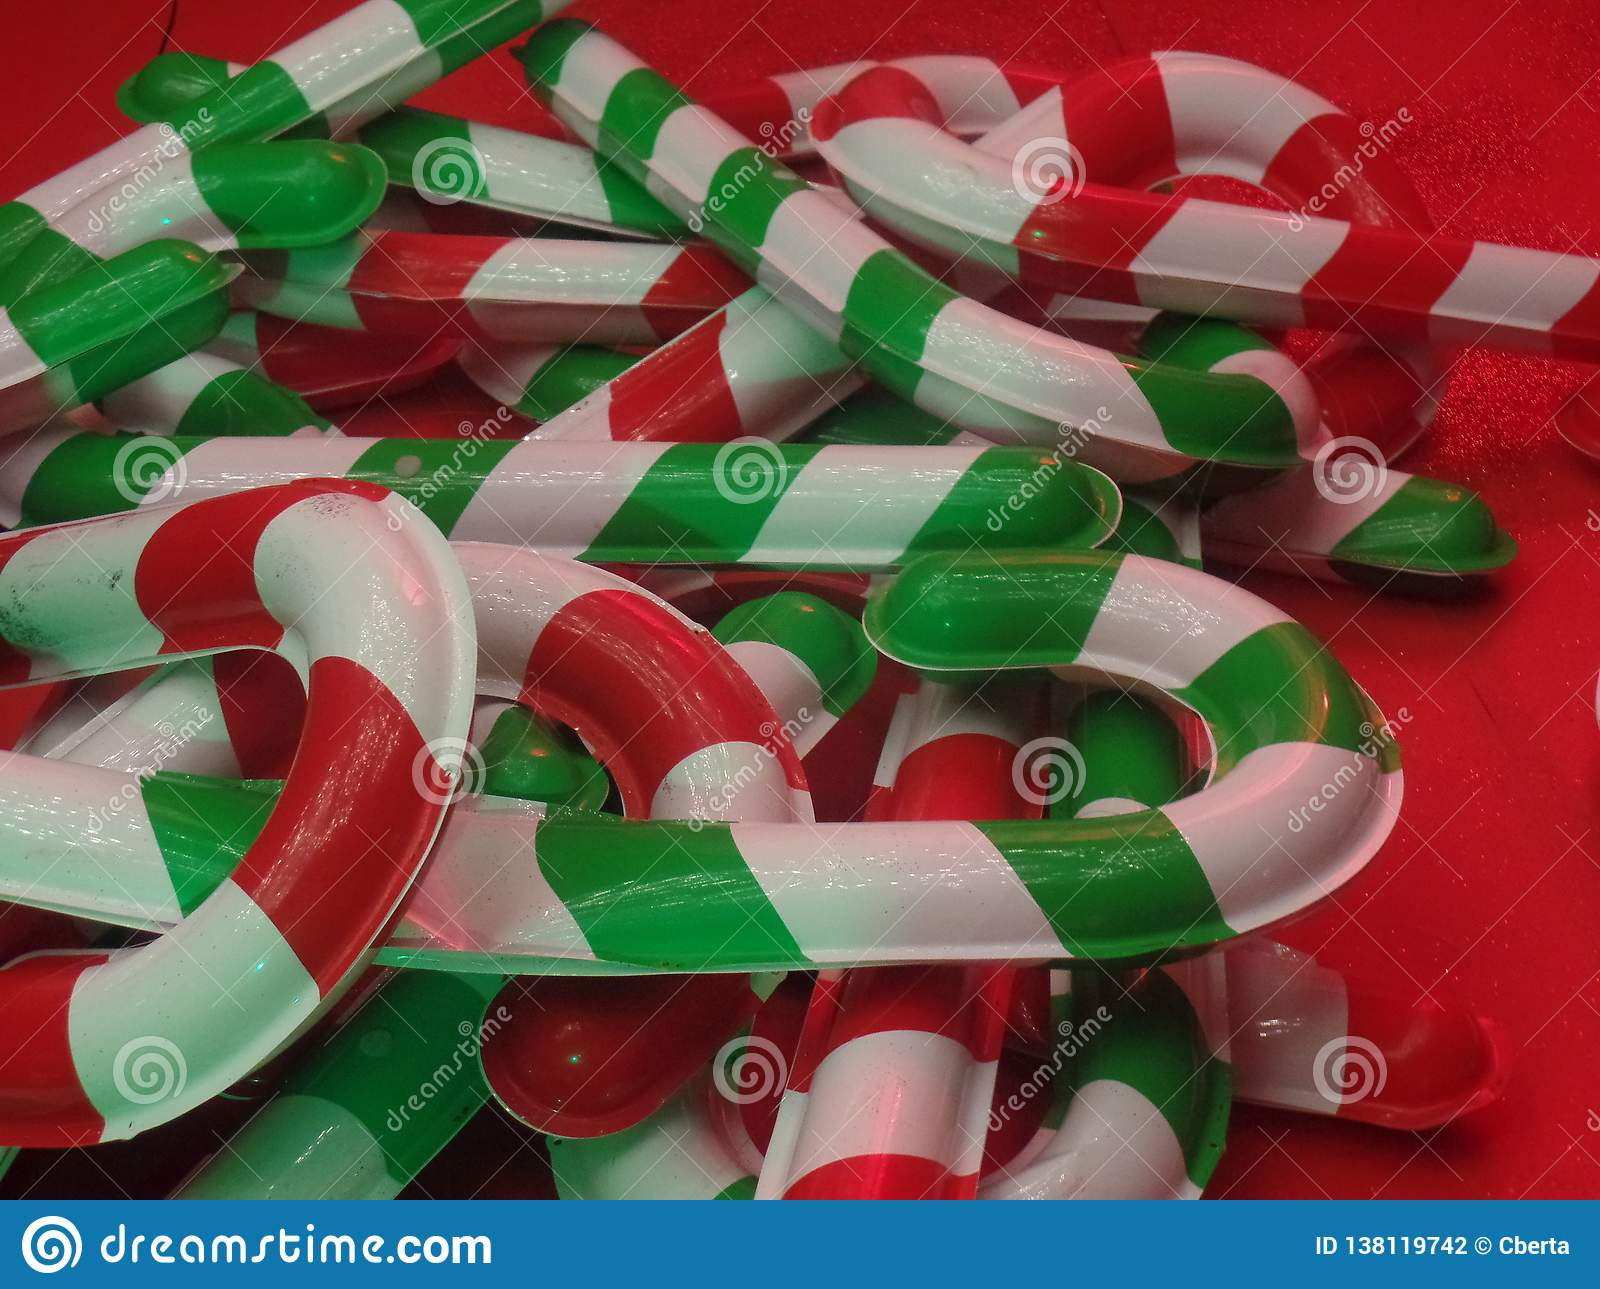 Giant Christmas Candy Cane Lollipop Decorations Stock Photo